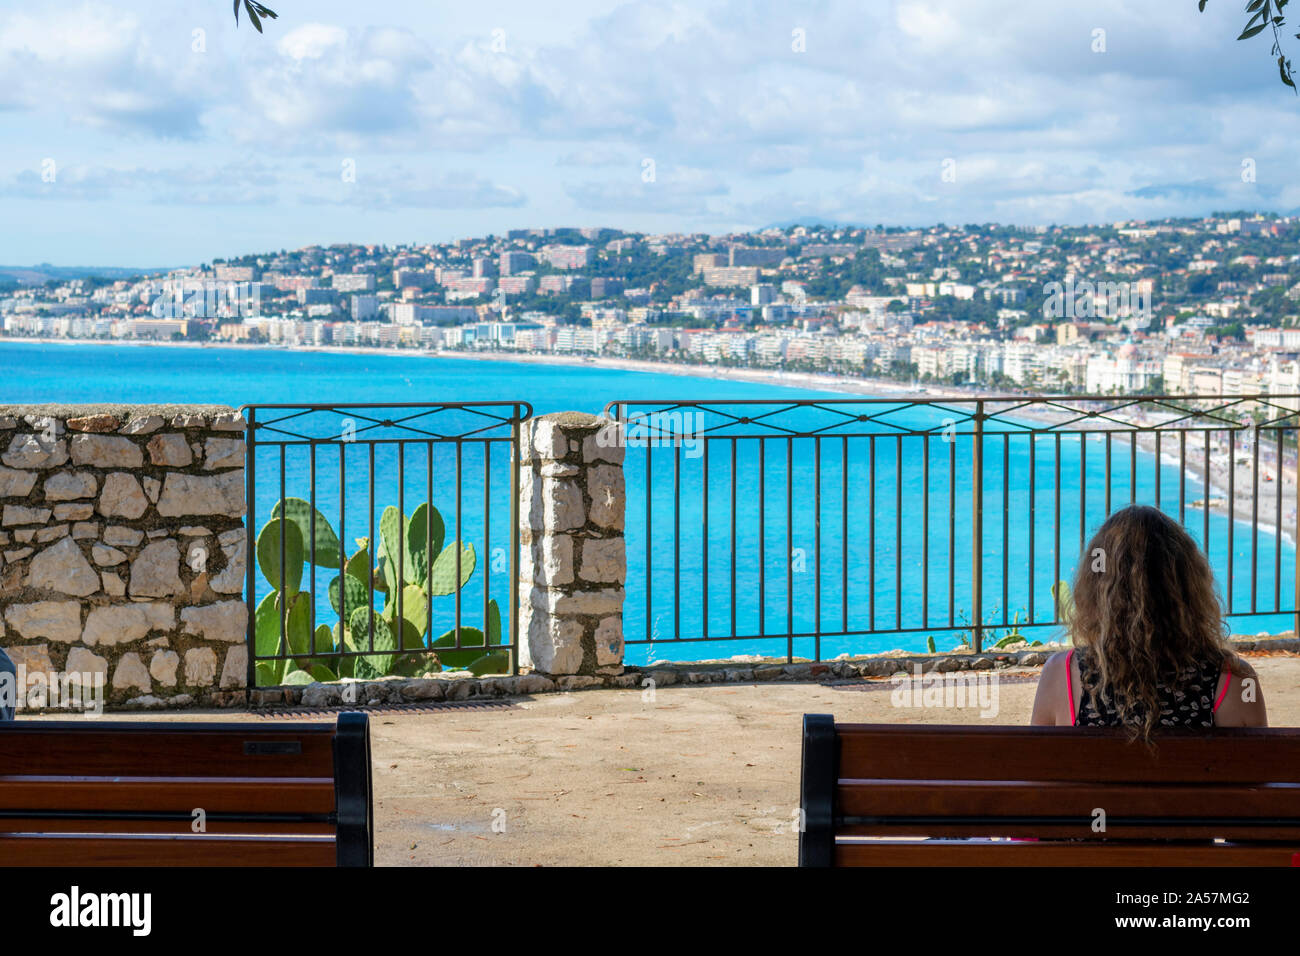 A woman sits on a bench from a lookout at Castle Hill overlooking the Mediterranean Sea, Bay of Angels, beach and city of Nice, France. Stock Photo